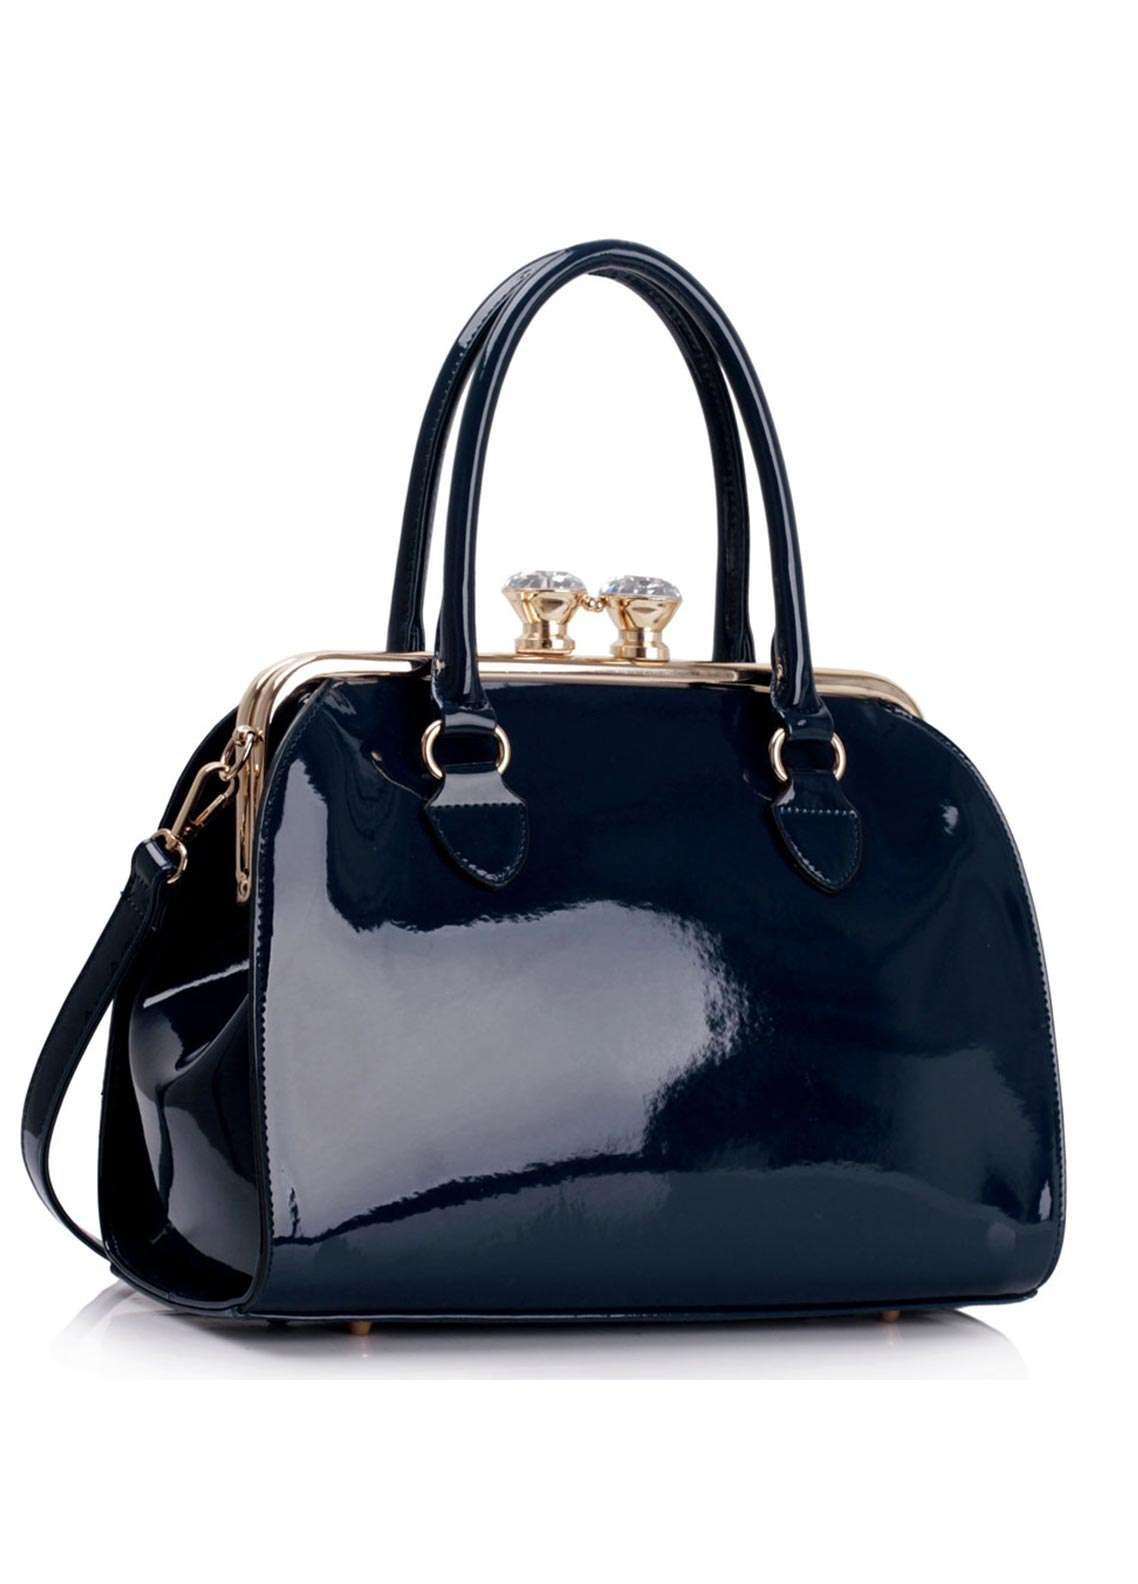 Anna Grace London Faux Leather Satchels Bags  for Women  Navy with Shiny Texture